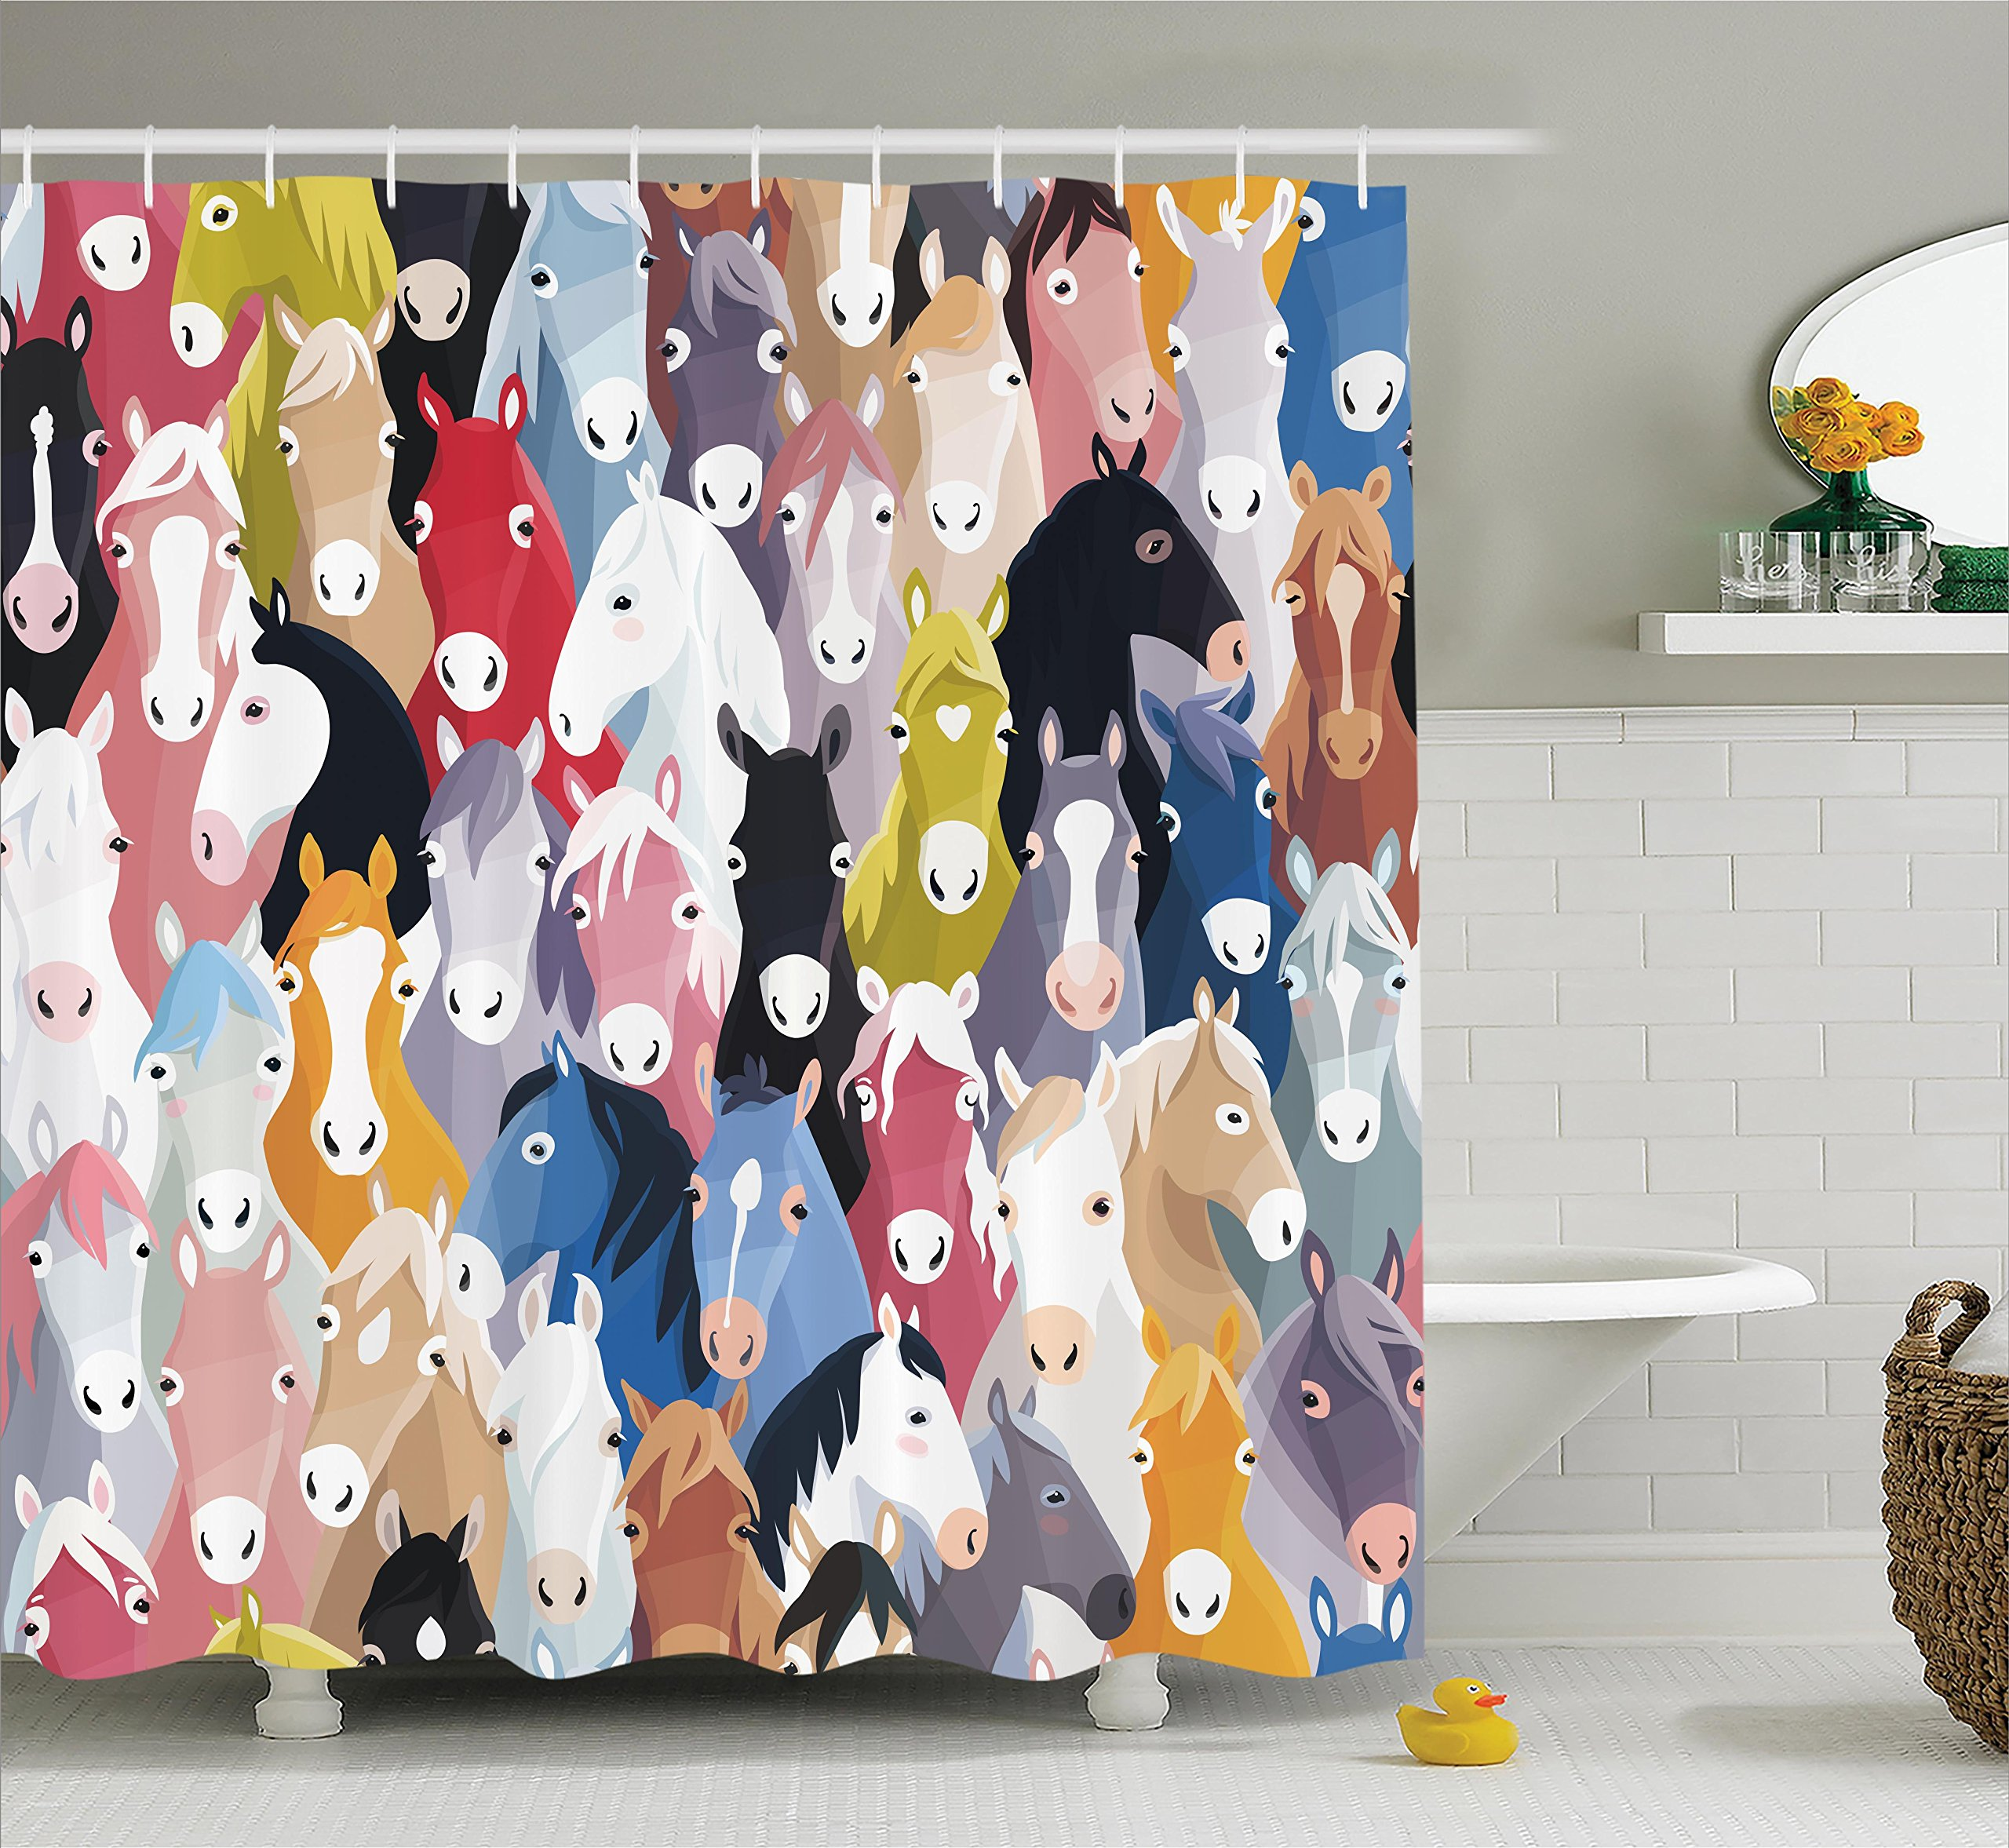 Horses Shower Curtain Set Abstract Decor by Ambesonne, Pattern with Colourful Cartoon Horses Pony Childhood Childish Artwork Pattern, Fabric Bathroom Accessories, With Hooks, Pink Blue Green